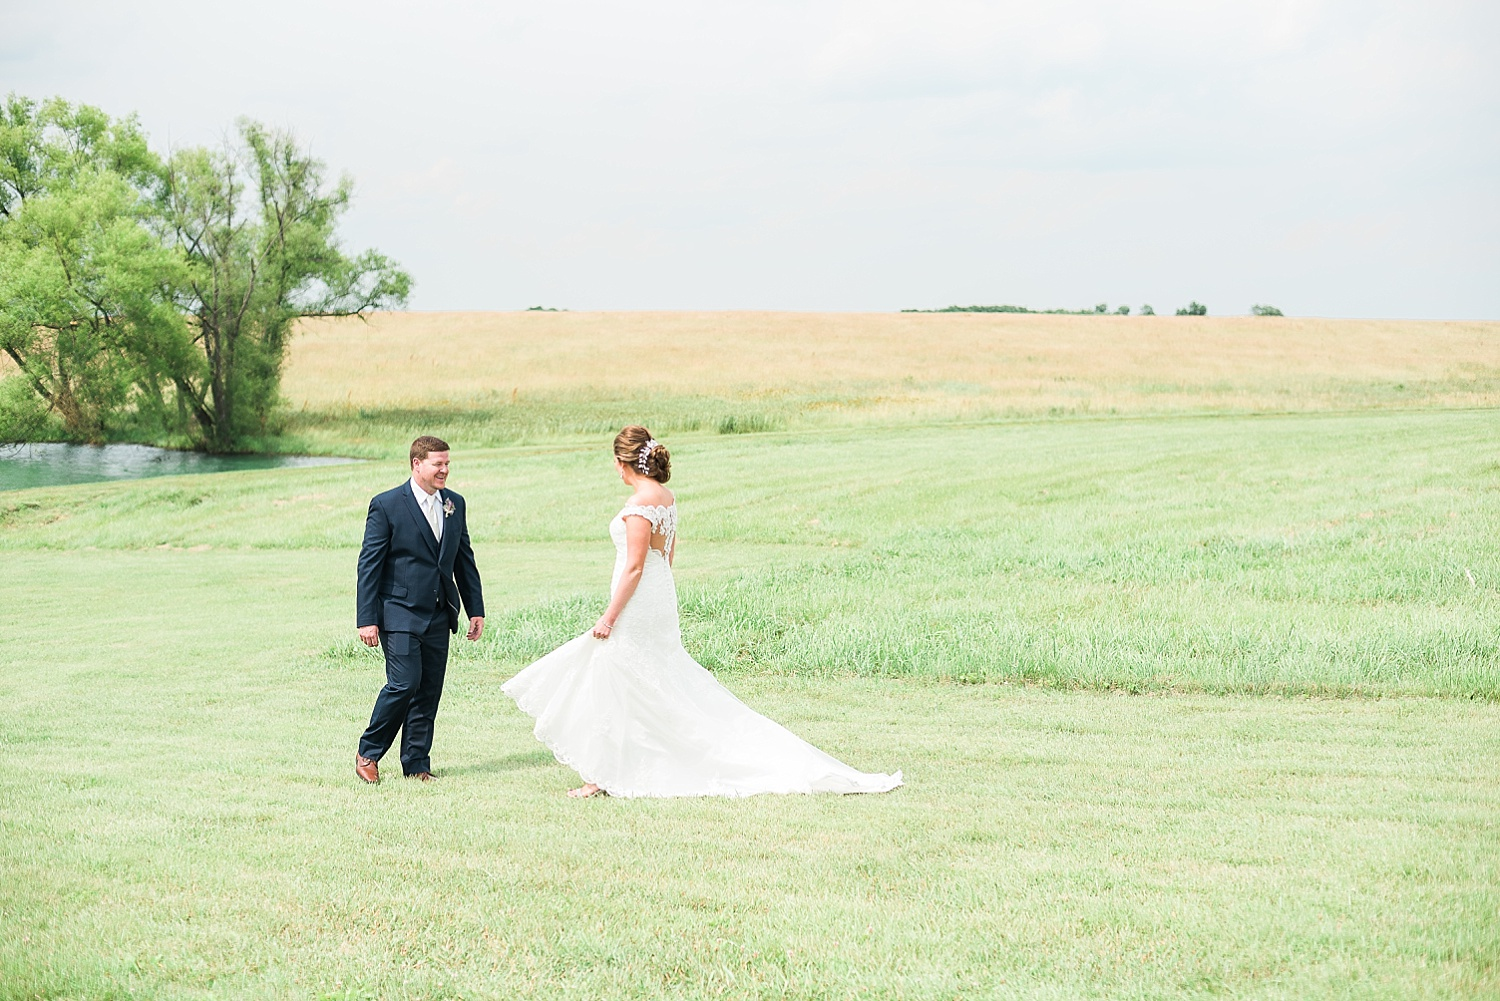 Their first look took place down near the pond